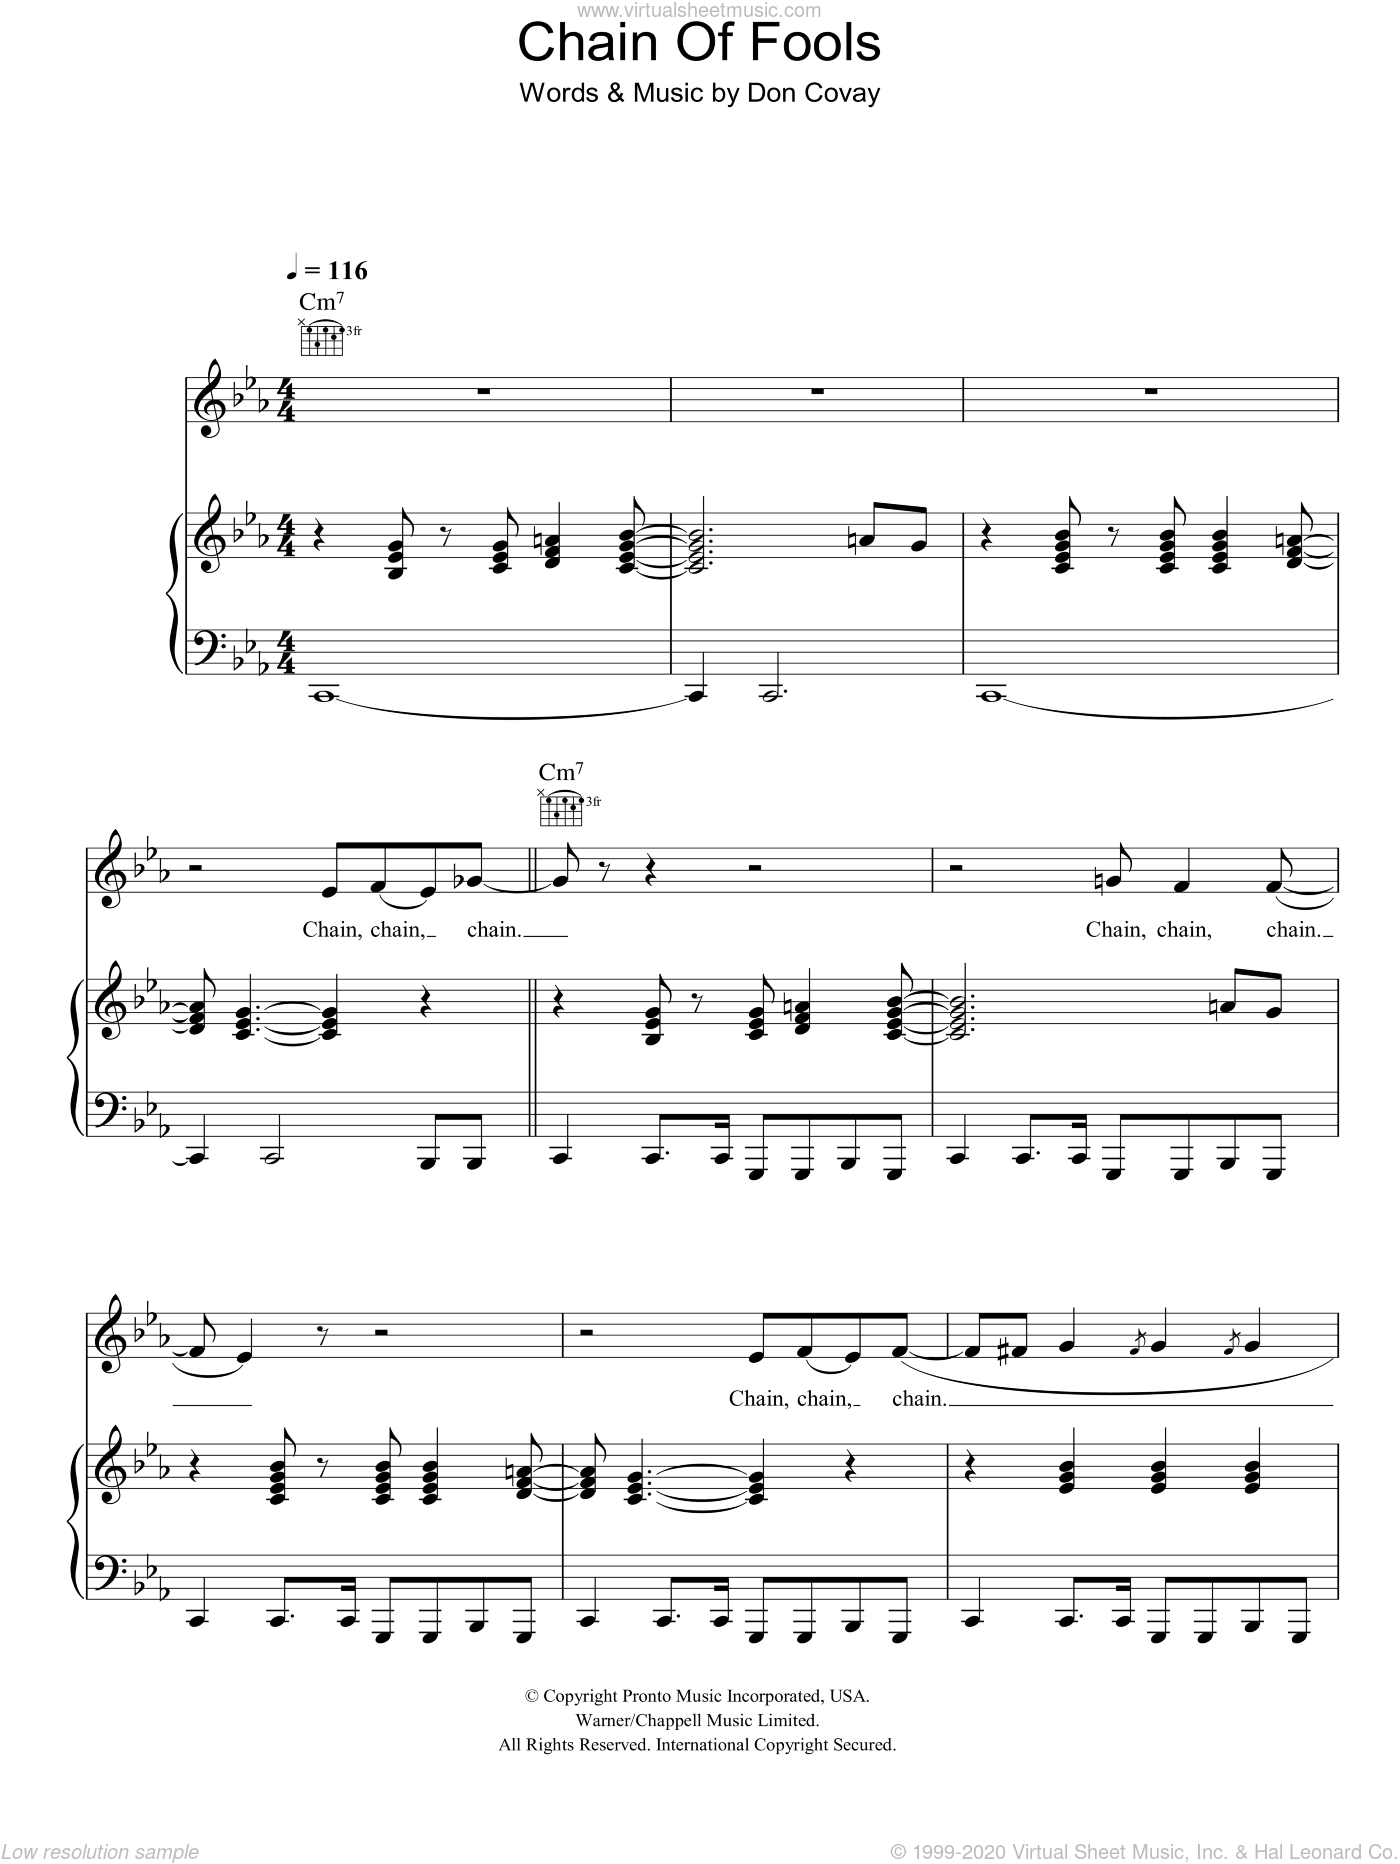 Chain Of Fools sheet music for voice, piano or guitar by Don Covay and Eva Cassidy. Score Image Preview.